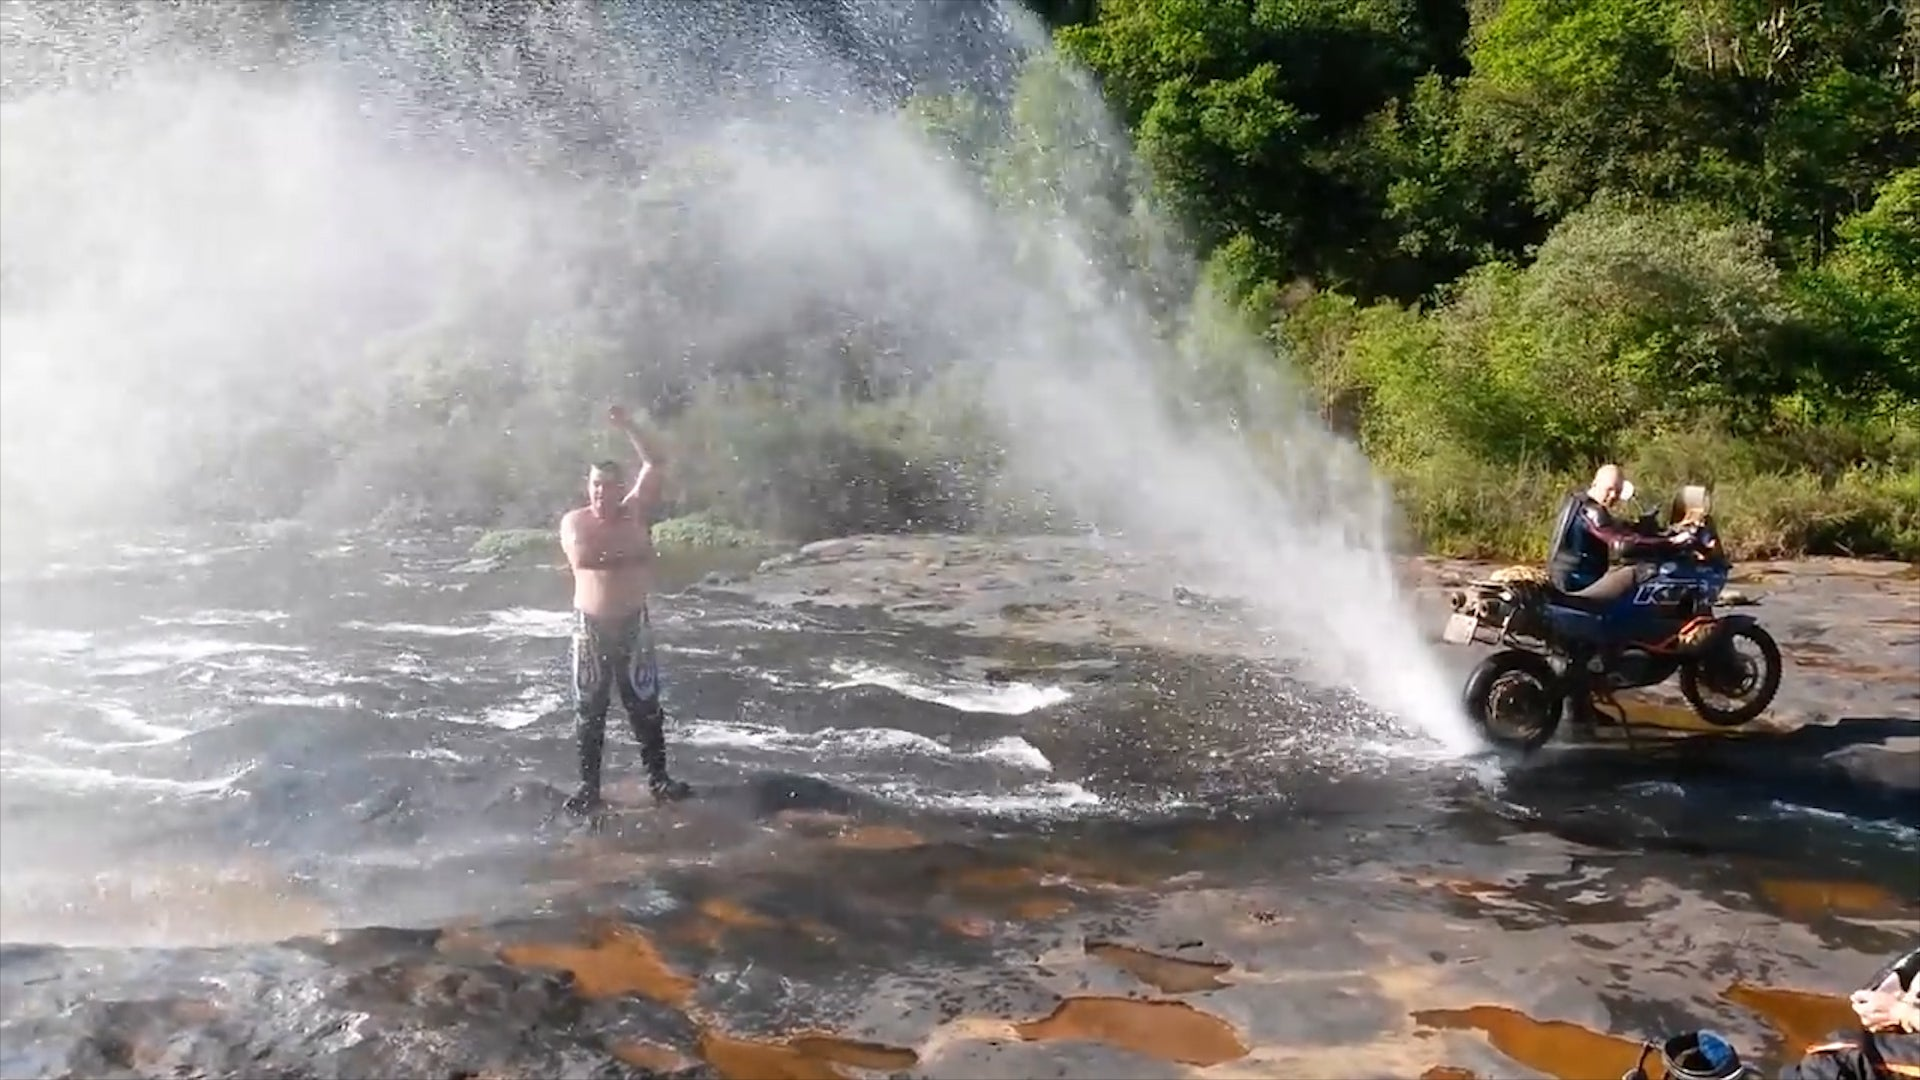 Watch Guy Turn Motorcycle into Shower in South Africa